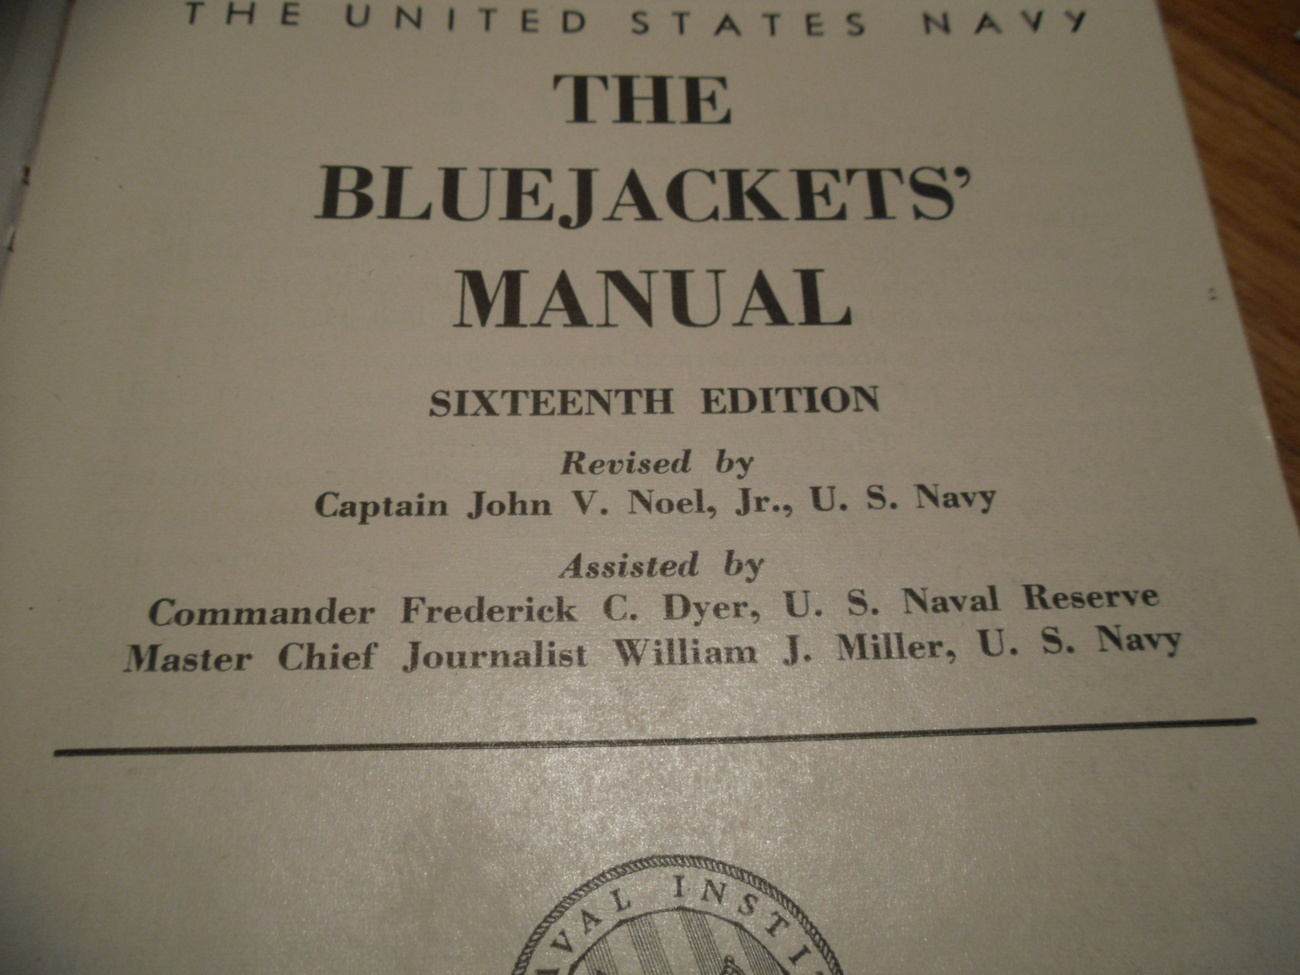 Book - THE BLUEJACKET'S MANUAL - The United States Navy